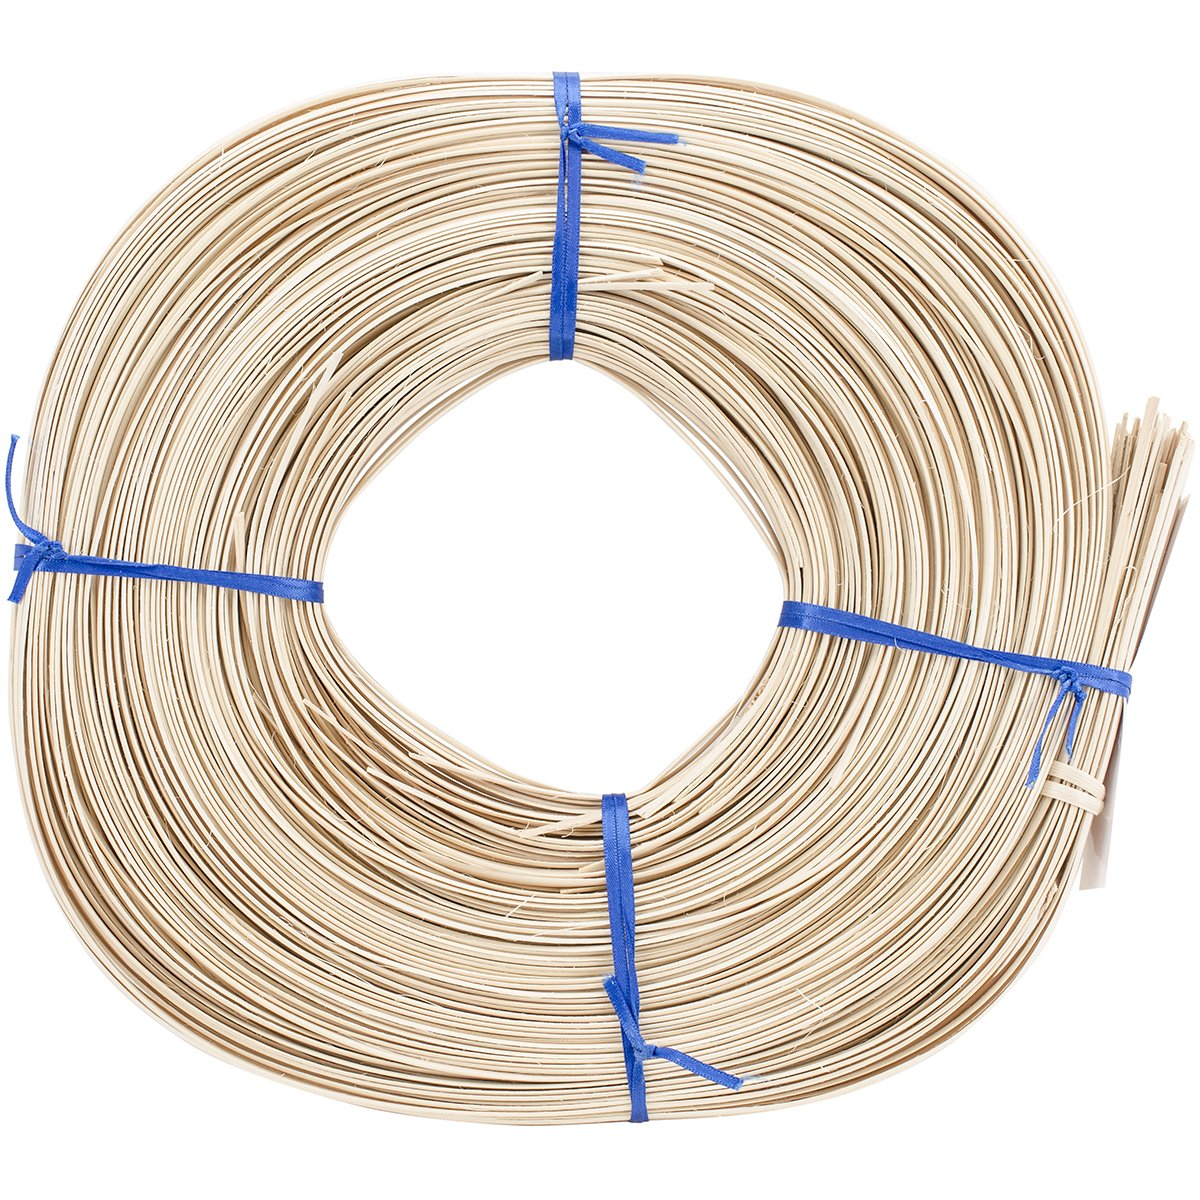 Commonwealth Basket Flat Oval Reed 11/64-Inch 1-Pound Coil, Approximately 320-Feet 1164FOC